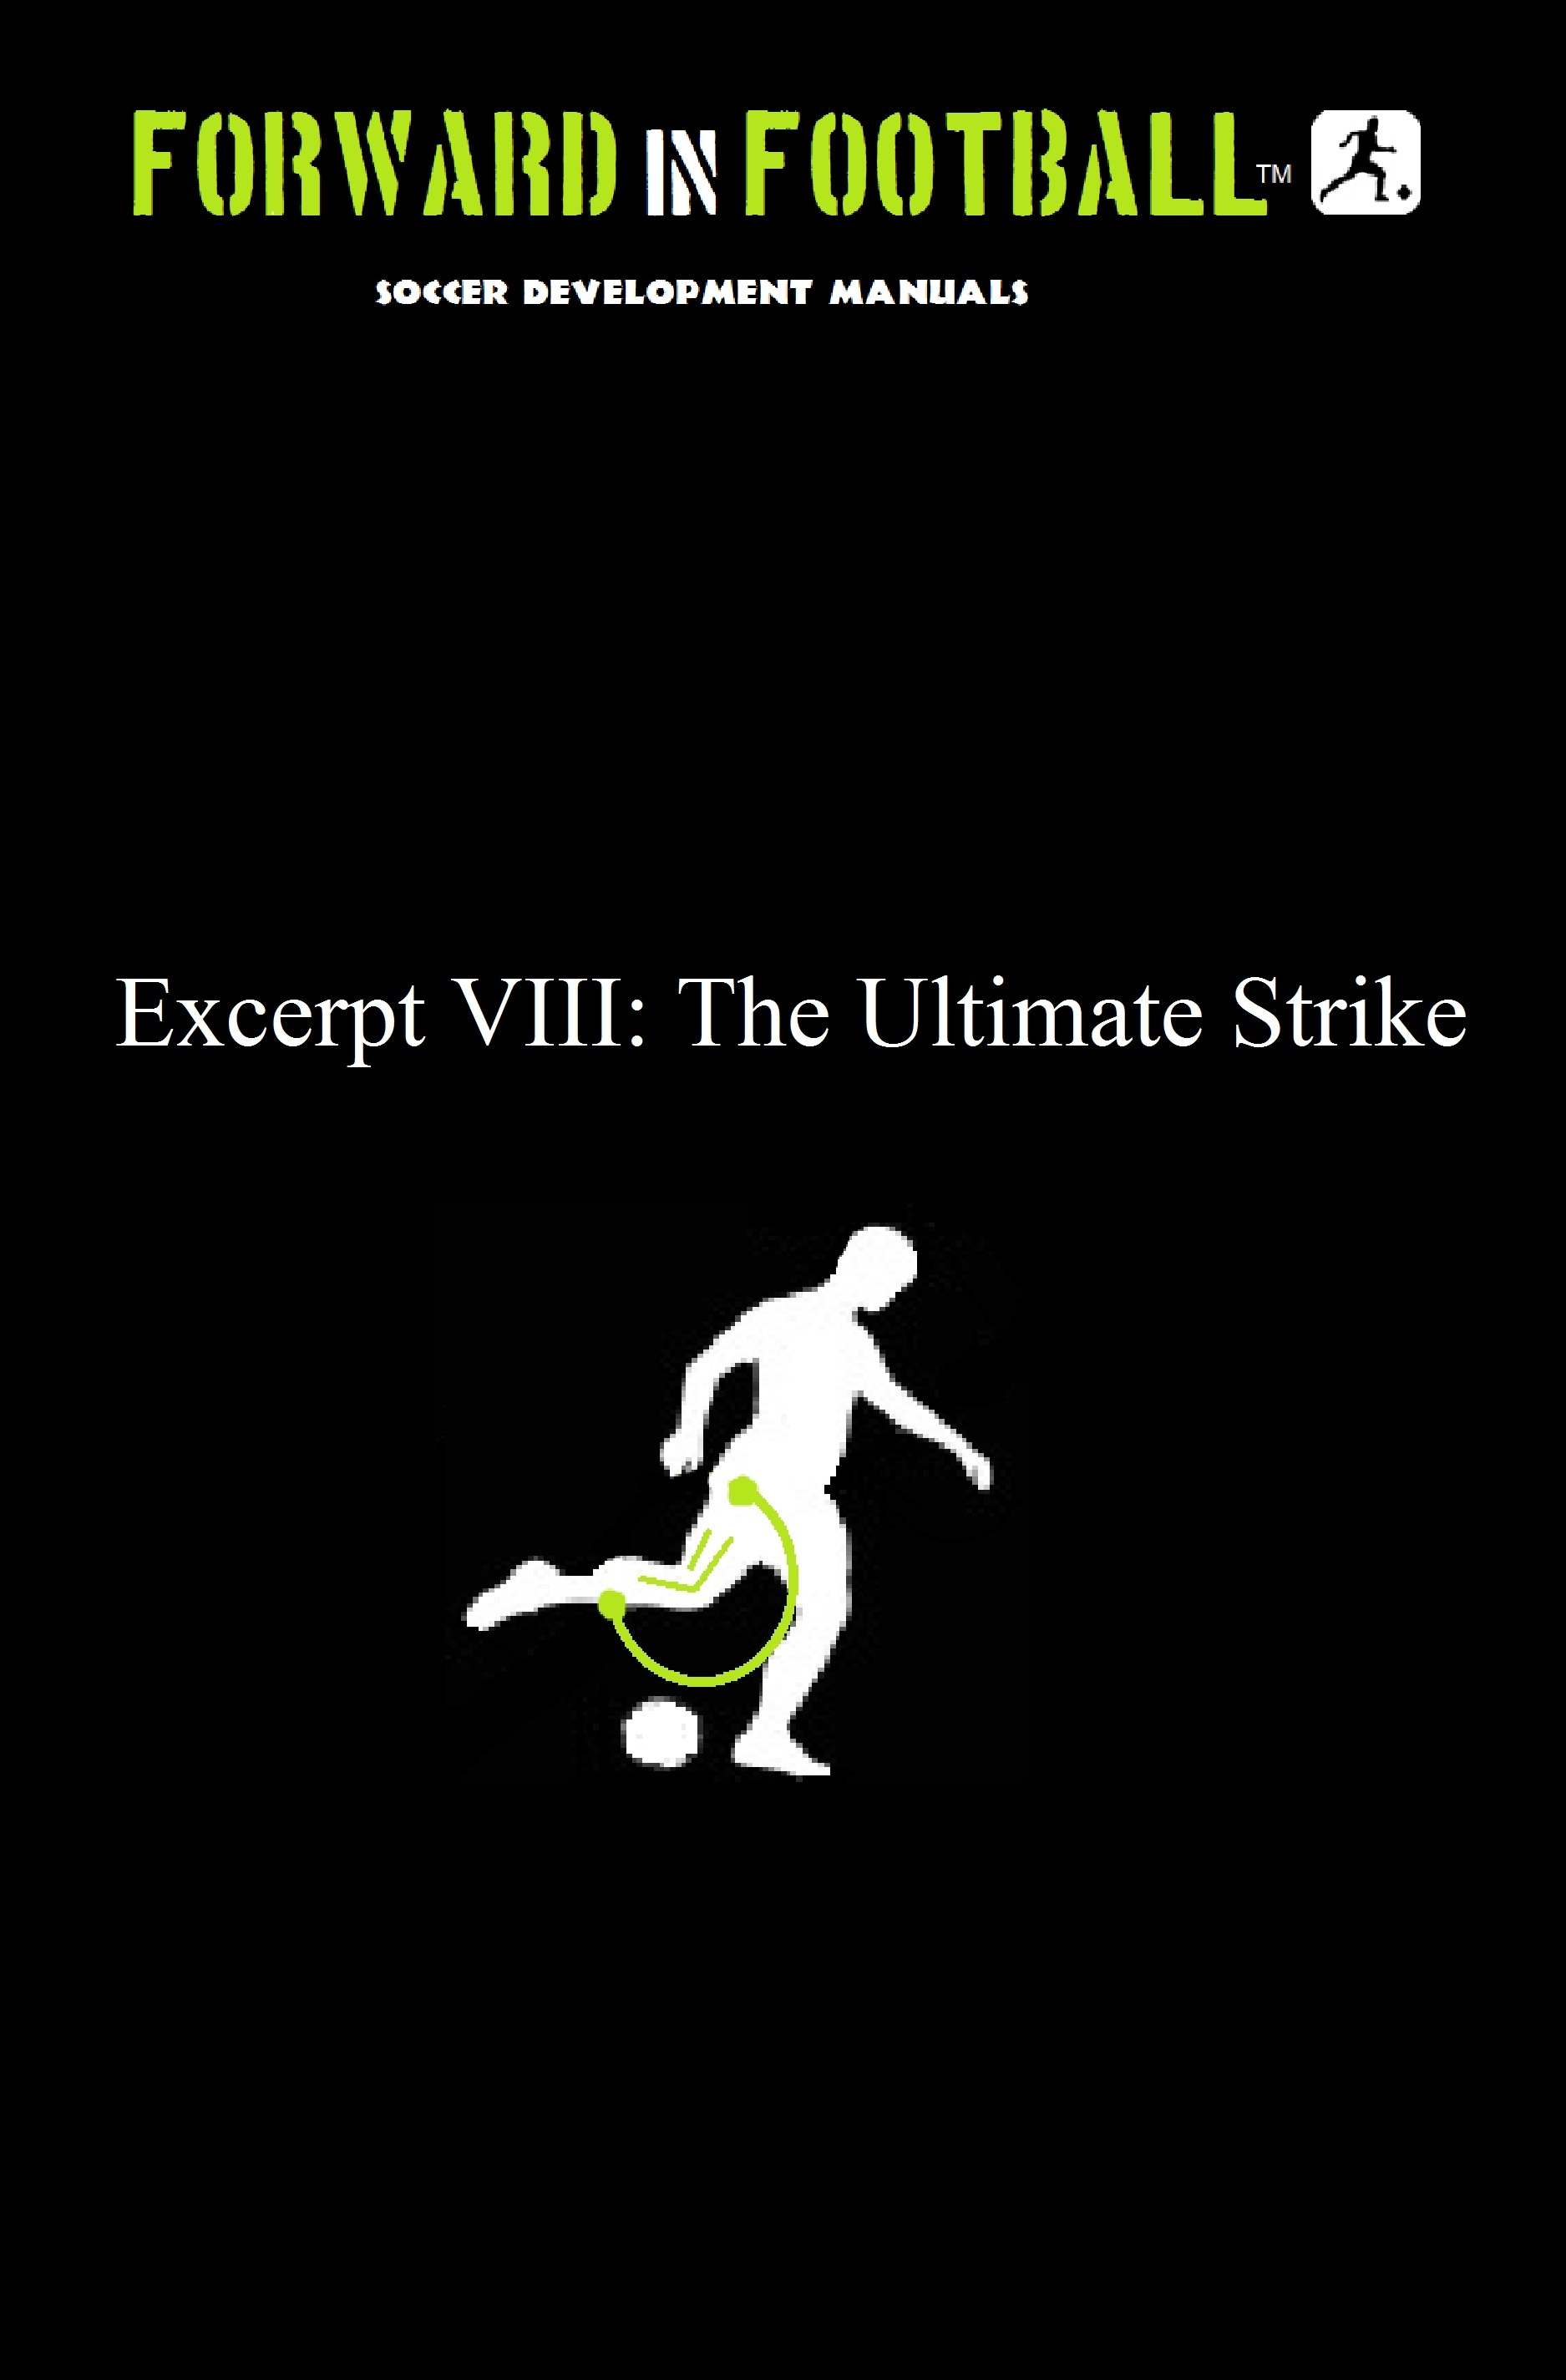 Forward in Football VIII Soccer Shooting Kicking Control Kick